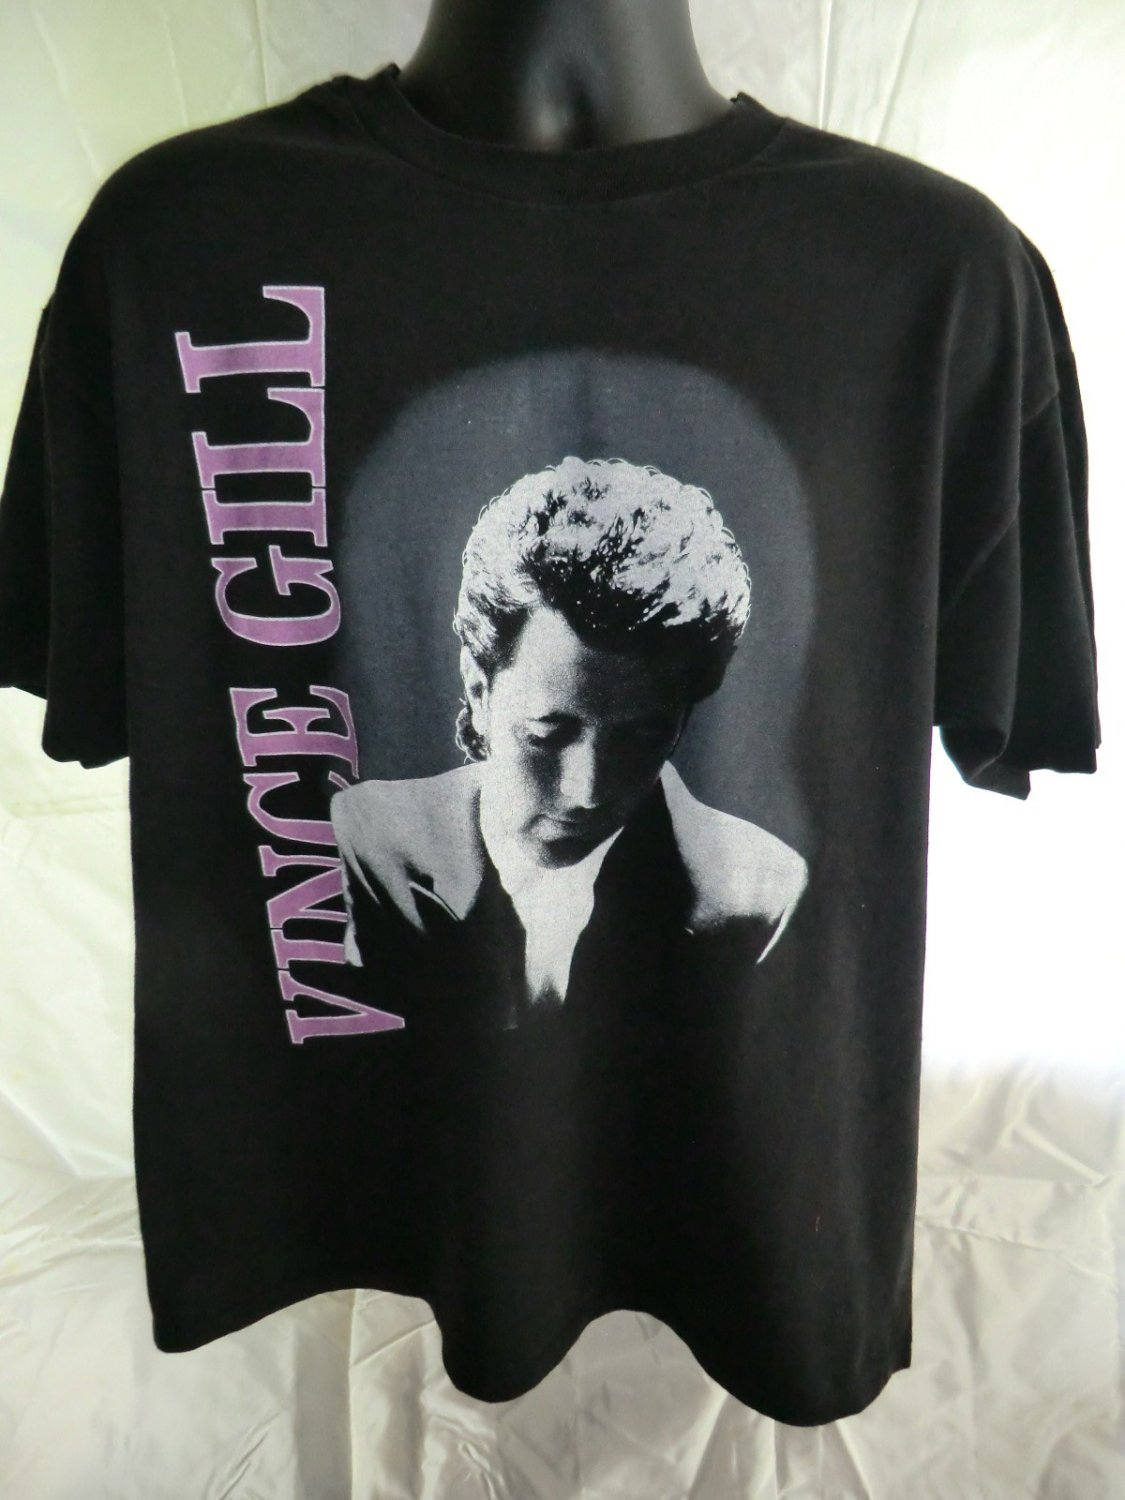 Vintage VINCE GILL 1994 I Still Believe In You Concert Tour T-Shirt Size XL